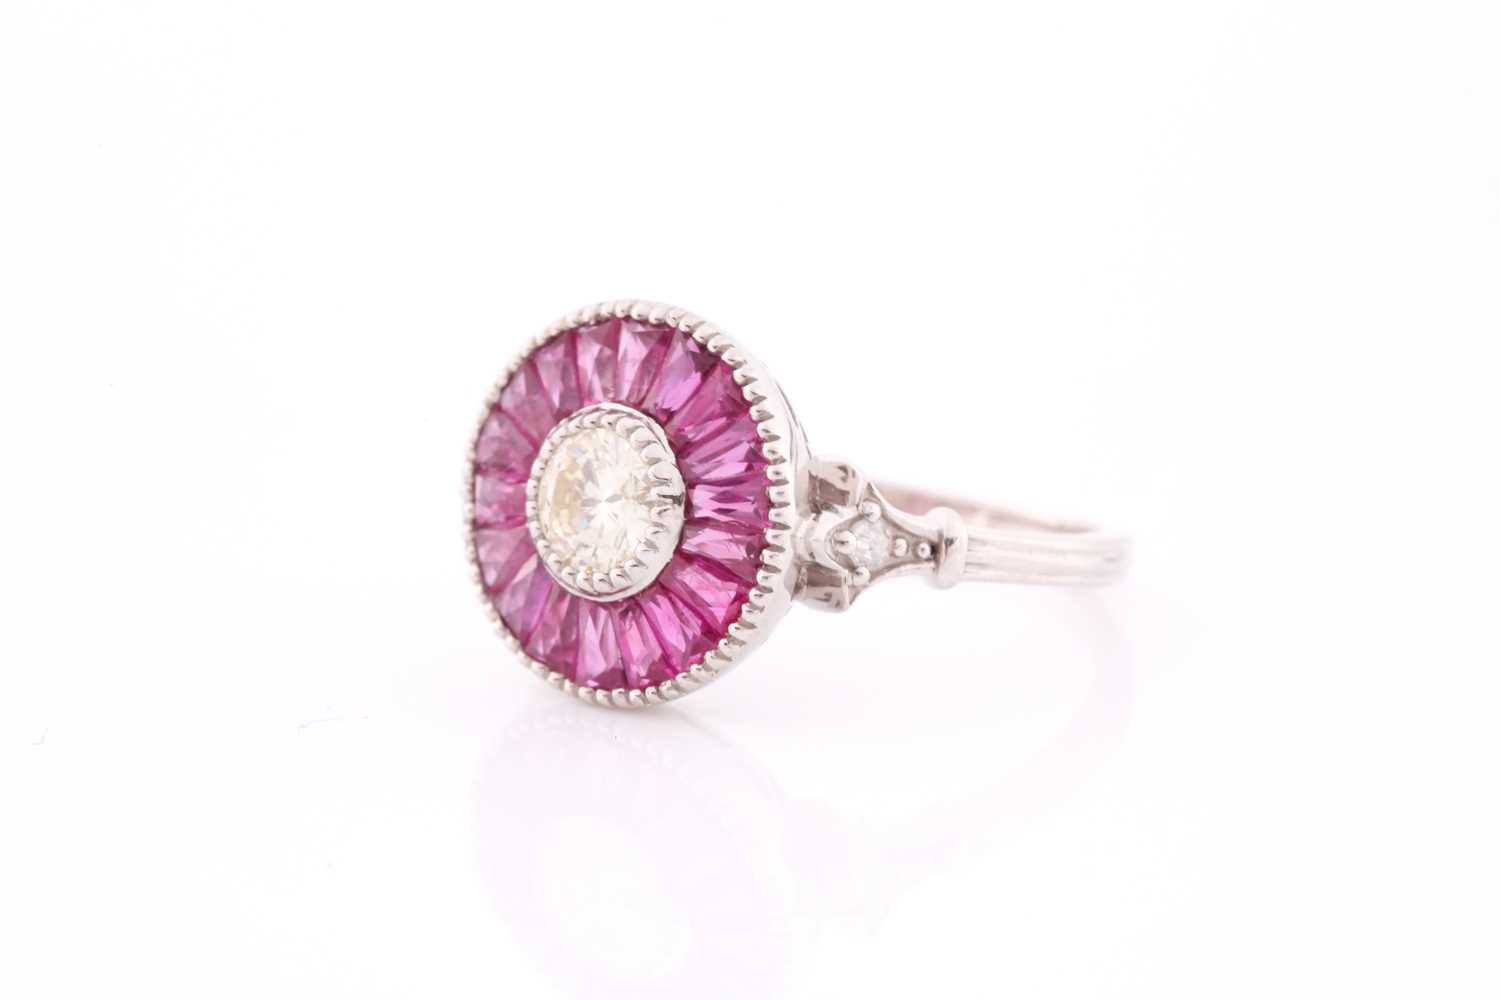 A diamond and ruby target ring, in the Art Deco style, centred with a round brilliant-cut diamond, - Image 3 of 4